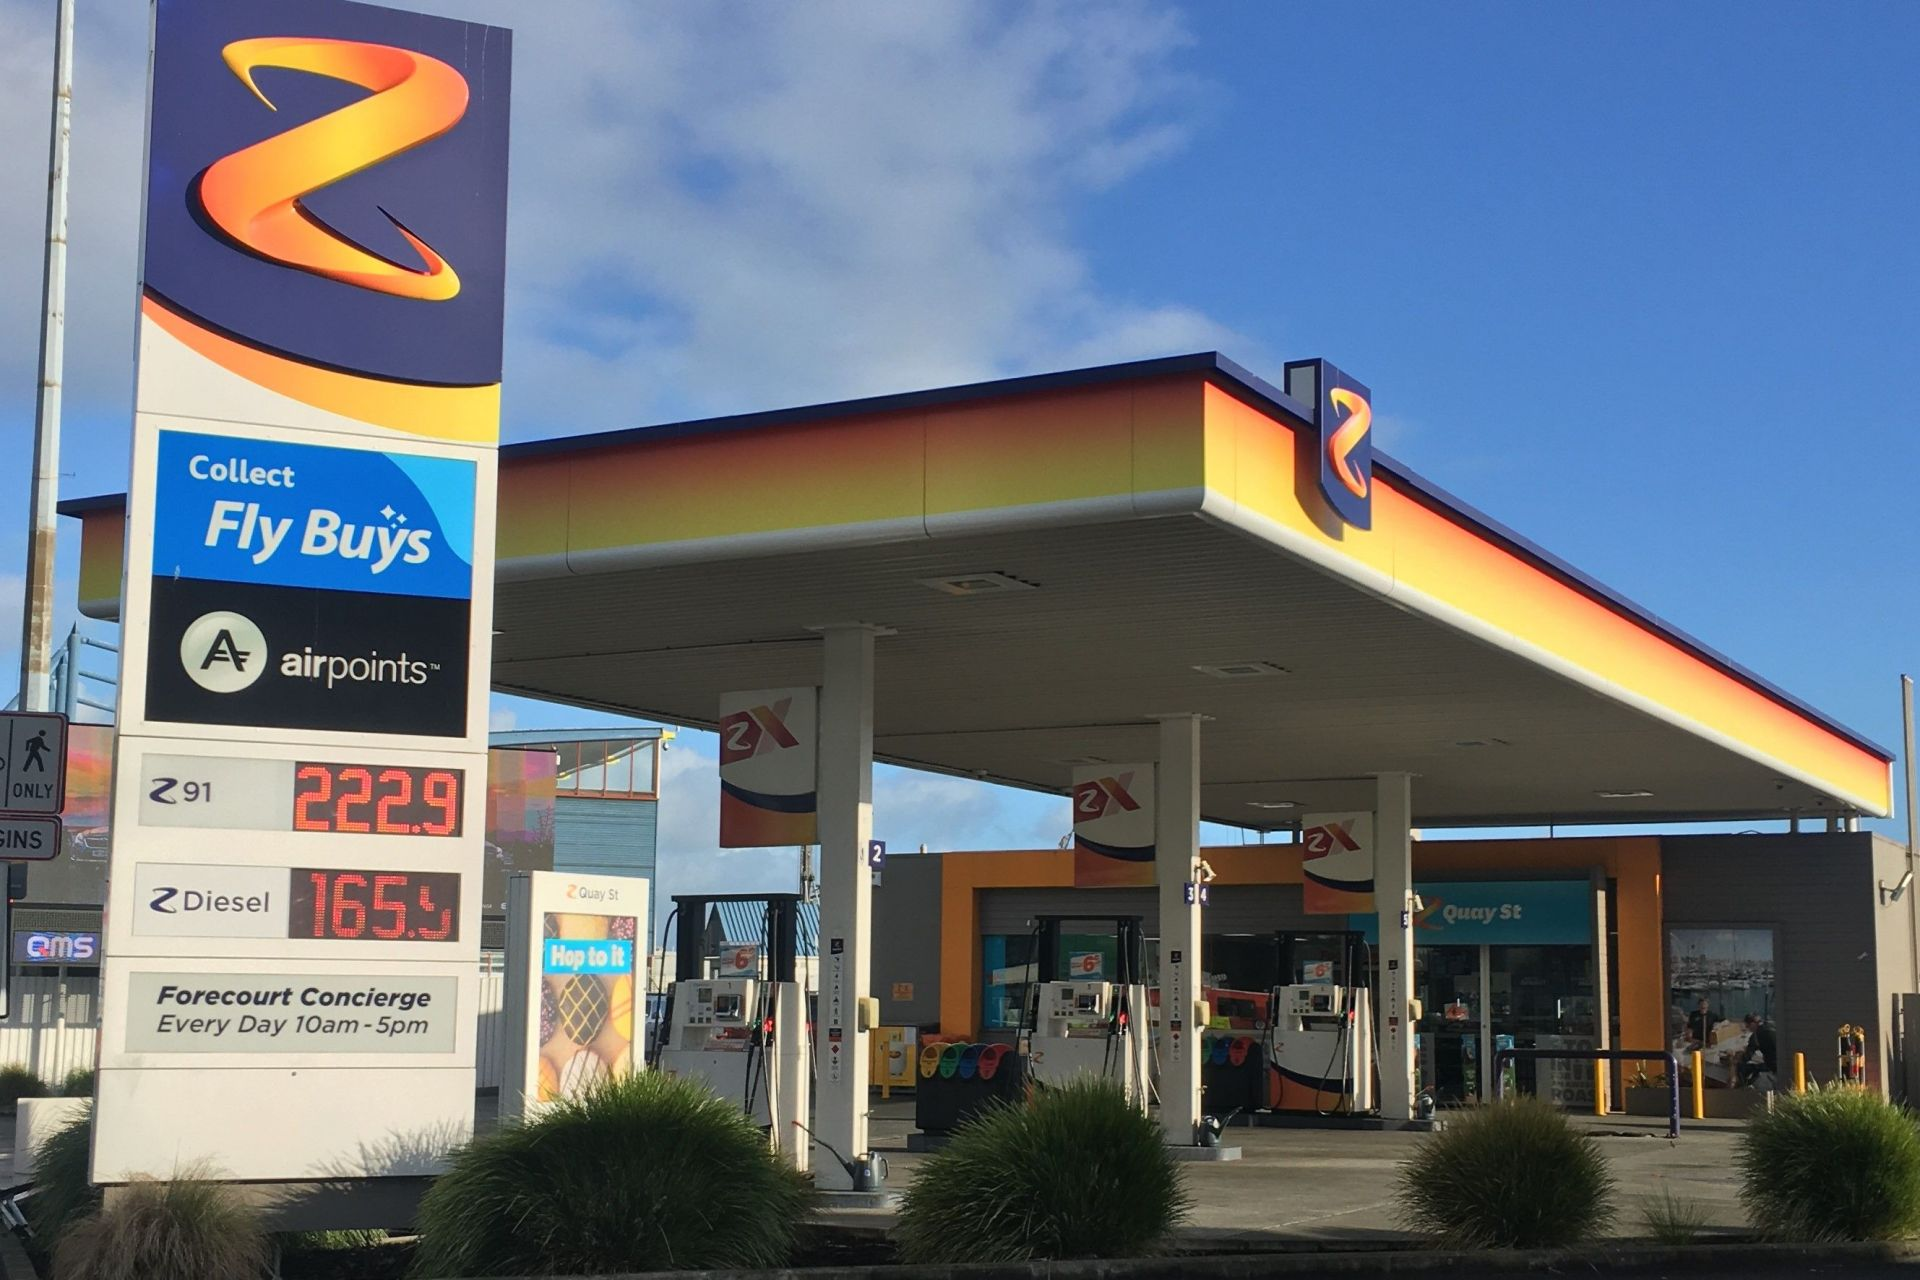 Service at service stations in New Zealand   Inside Franchise Business